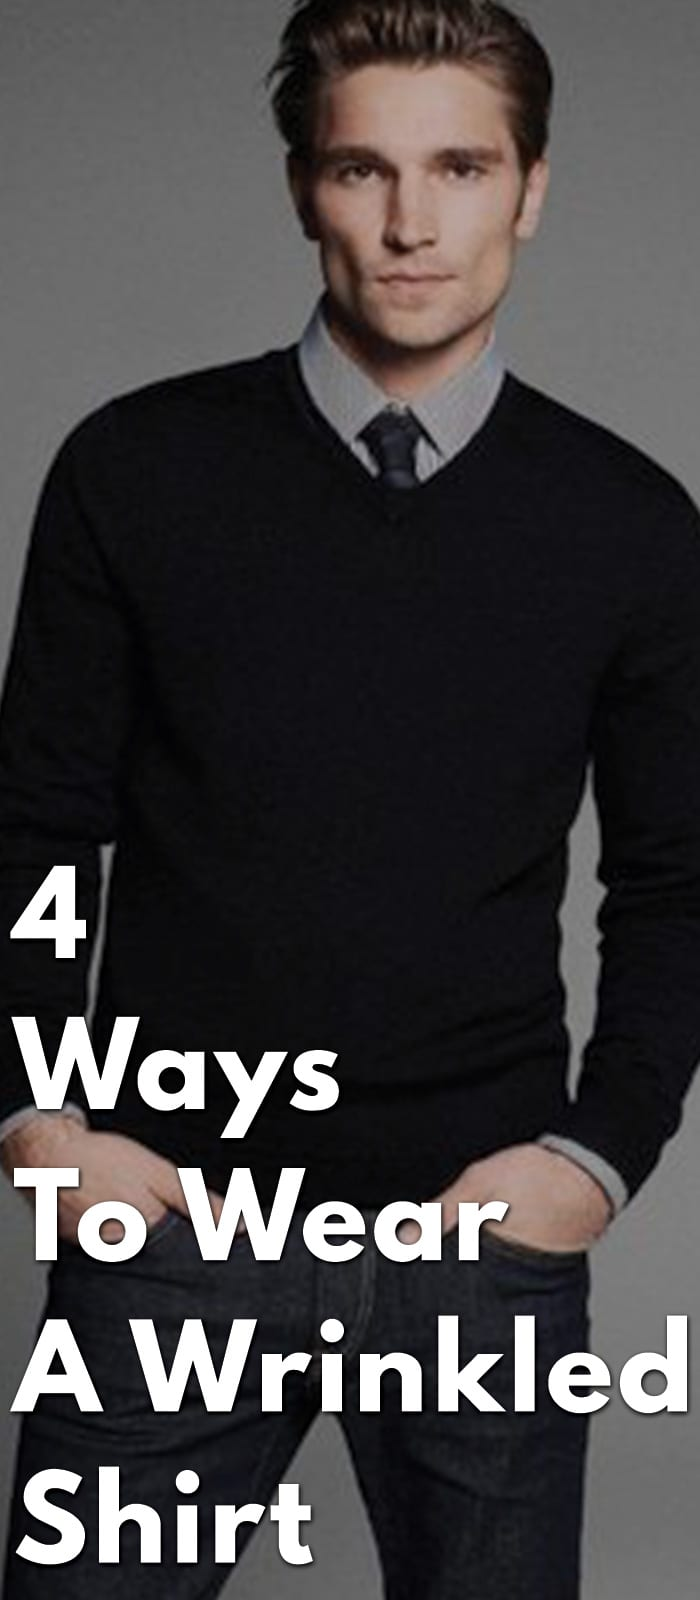 4-Ways-To-Wear-A-Wrinkled-Shirt